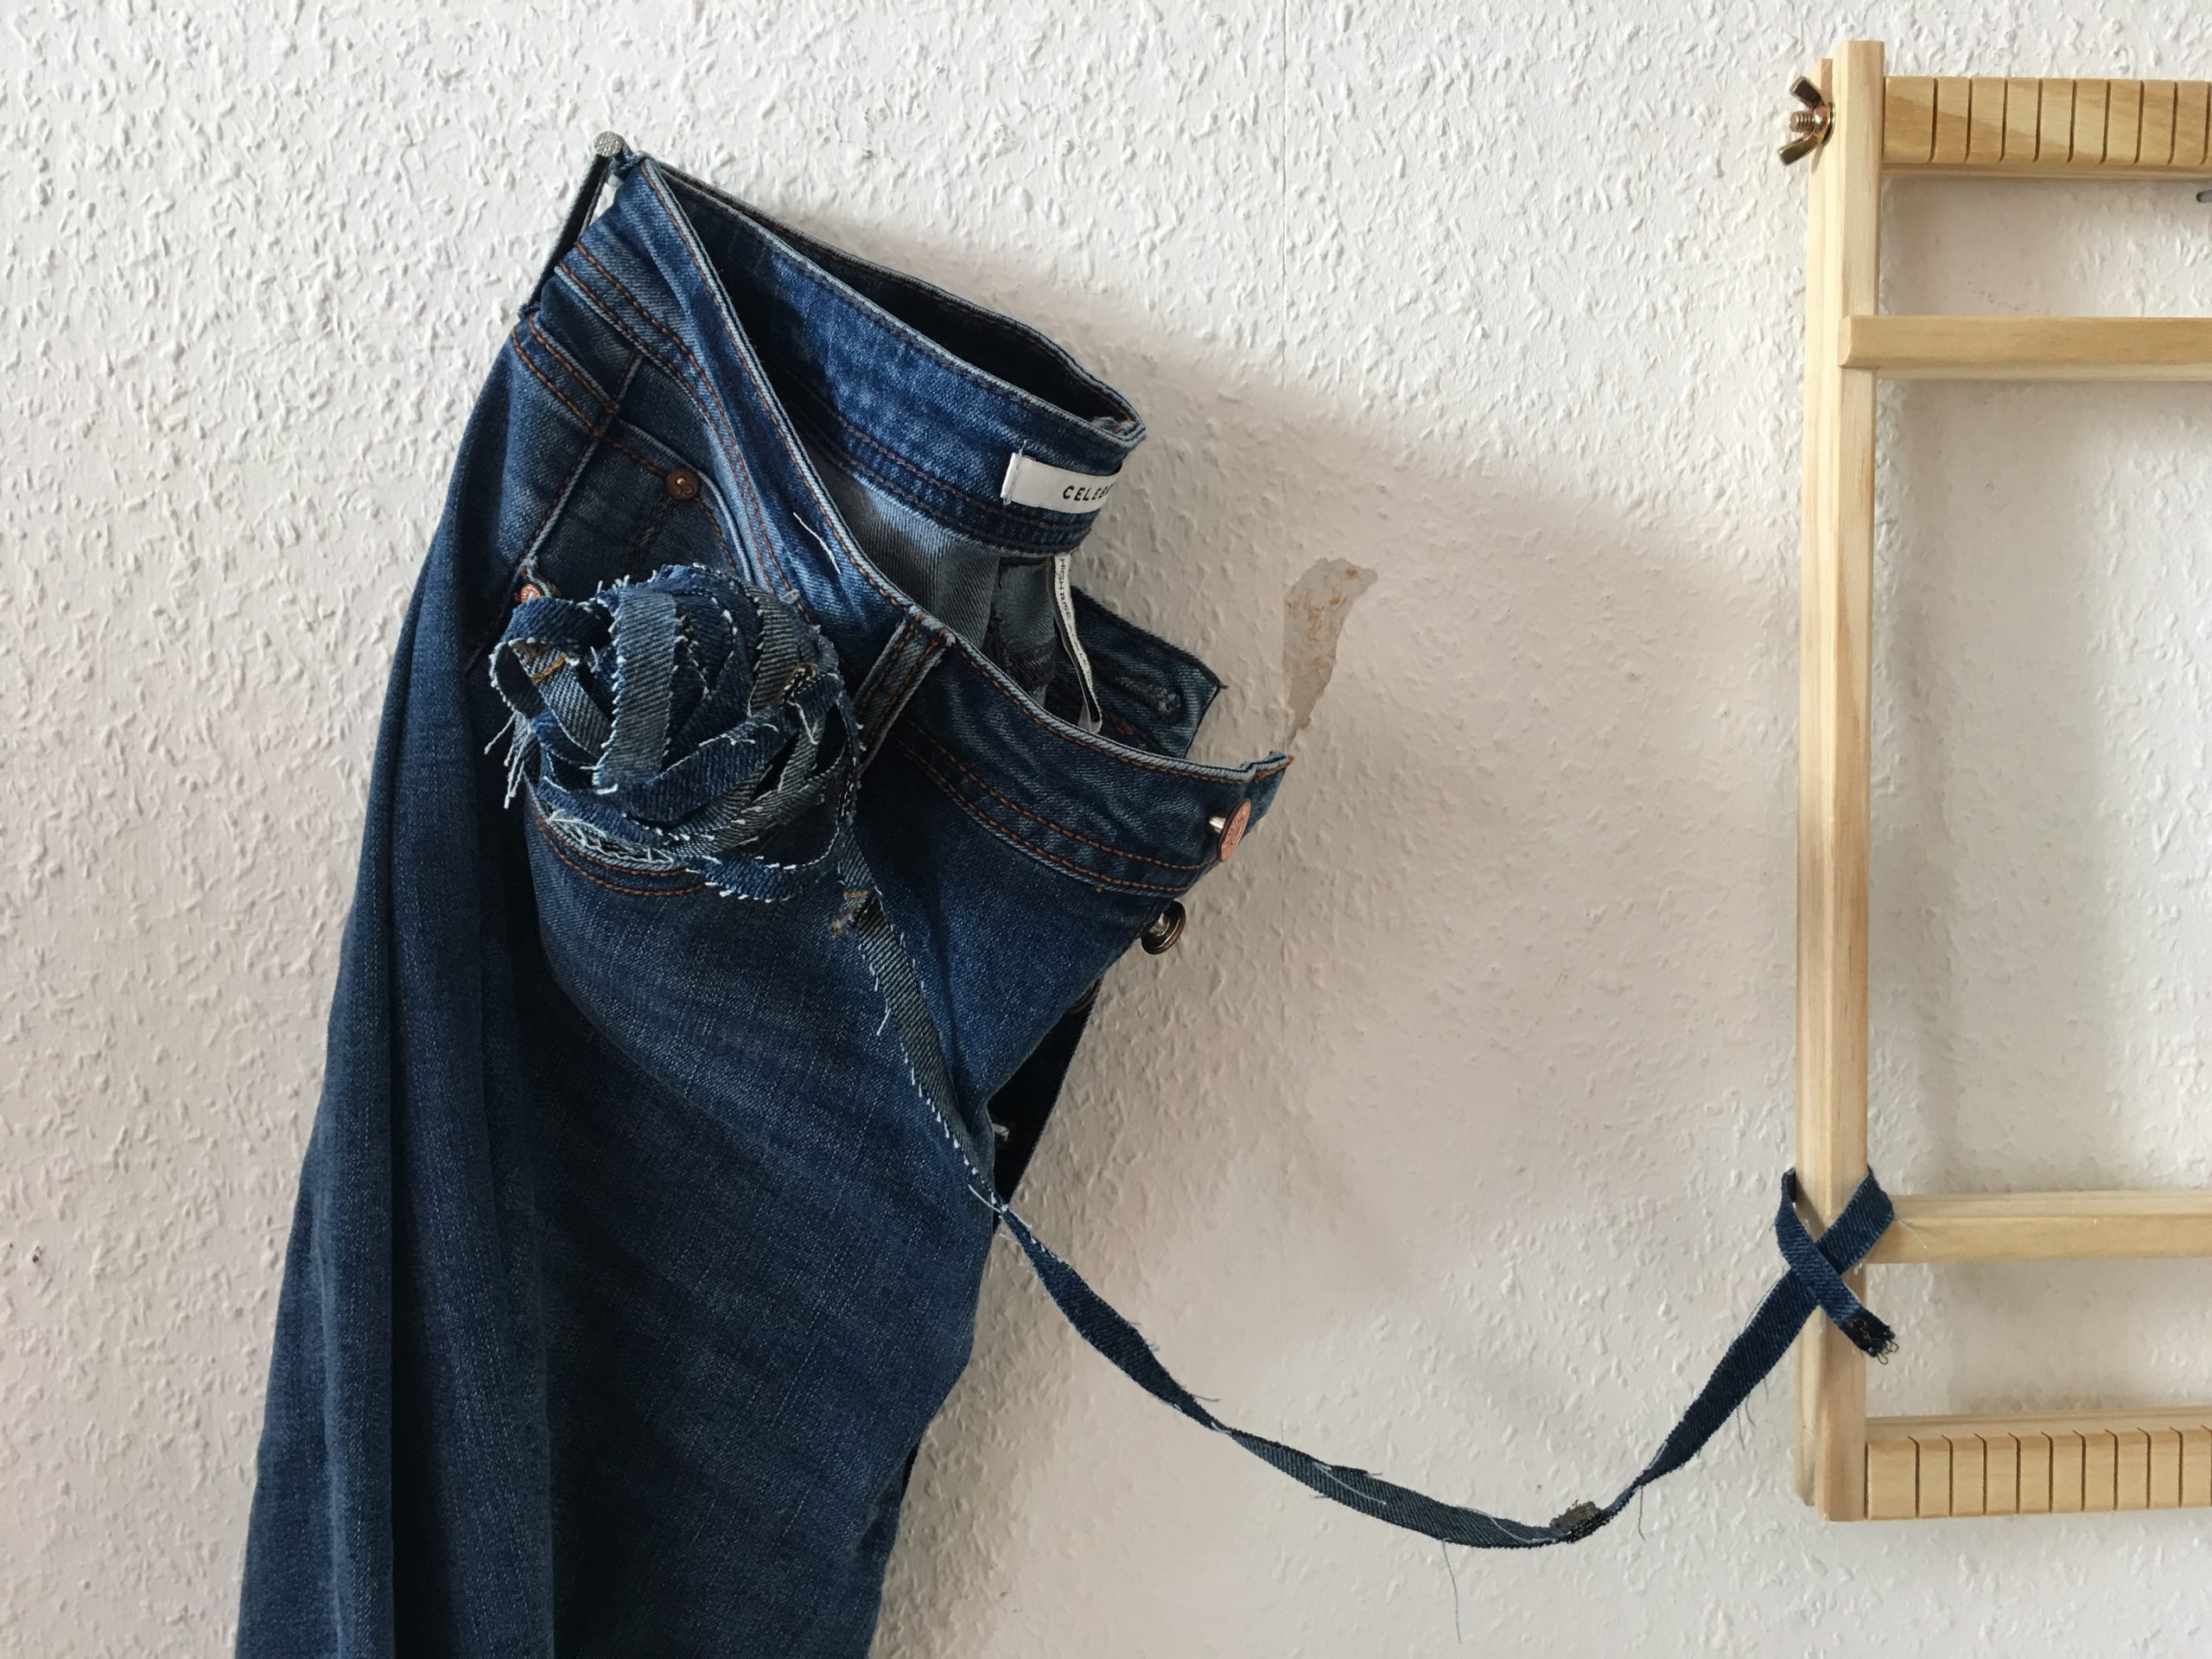 Weaving with Jeans: Weaving Techniques